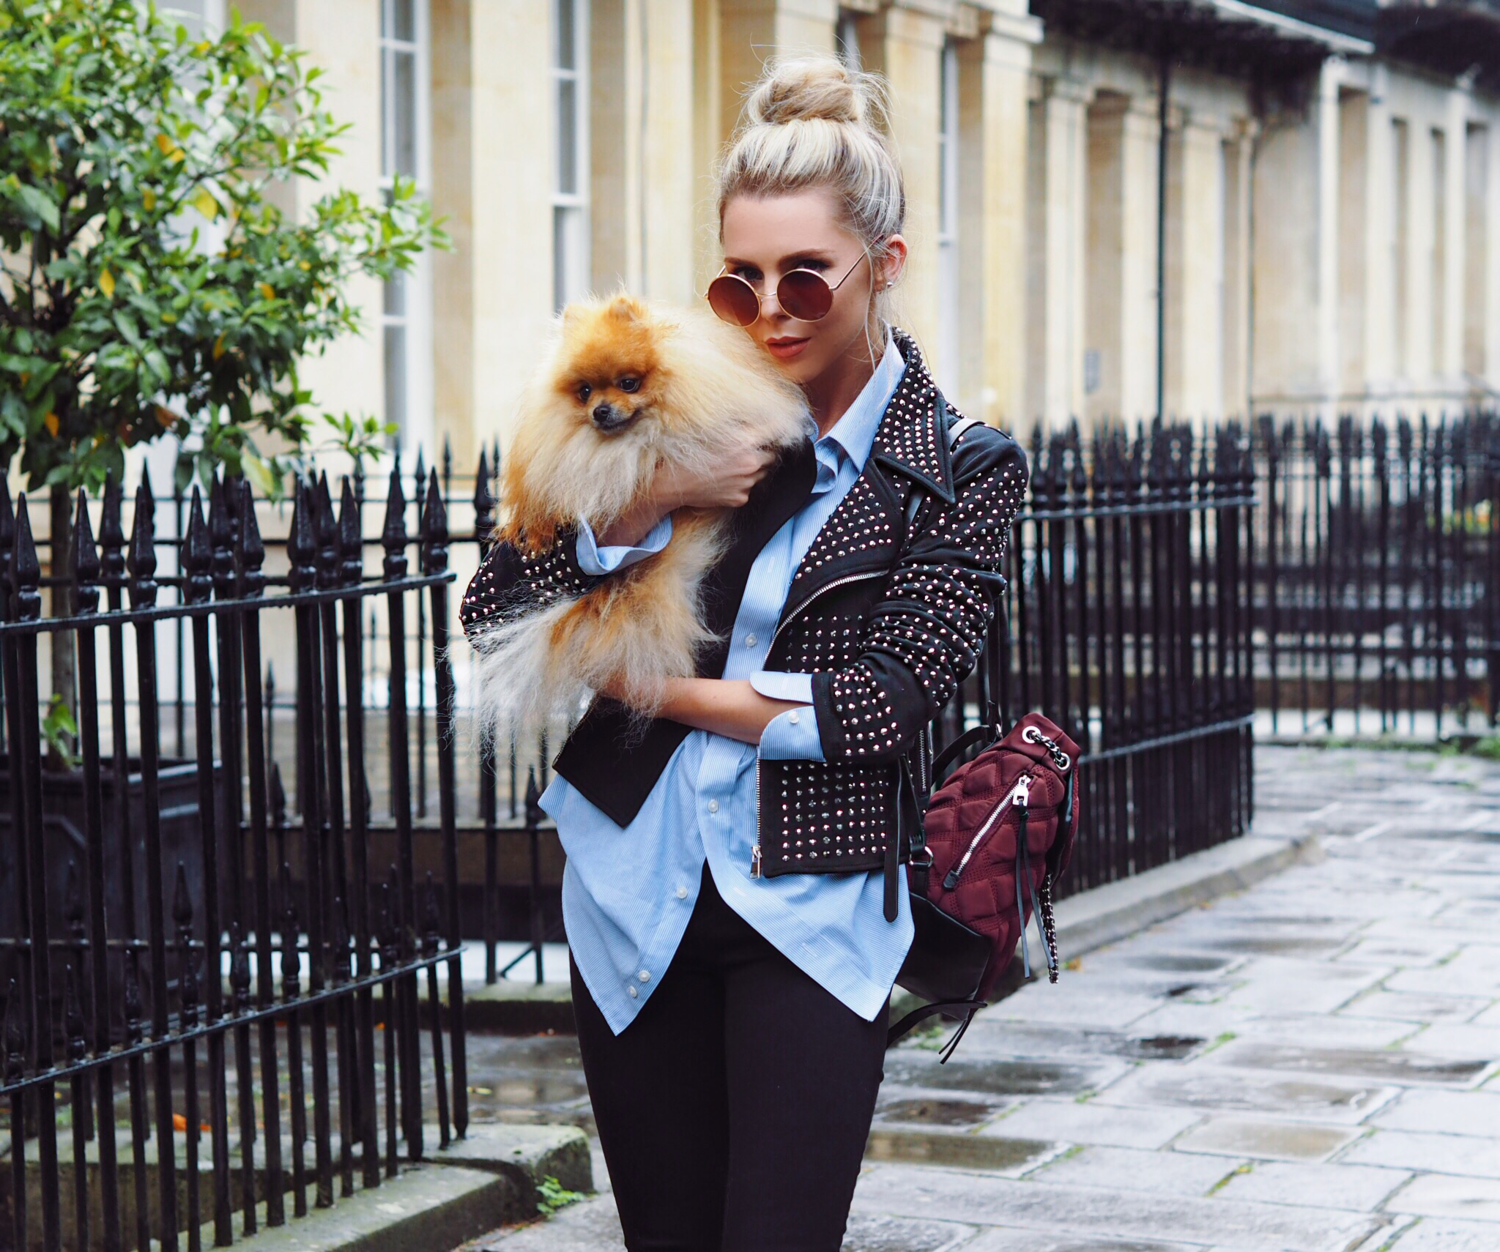 STUDDED JACKET, OOTD, STYLE BLOGGER, FASHION, STREET STYLE, LAURA BLAIR, LONDON FASHION GIRL